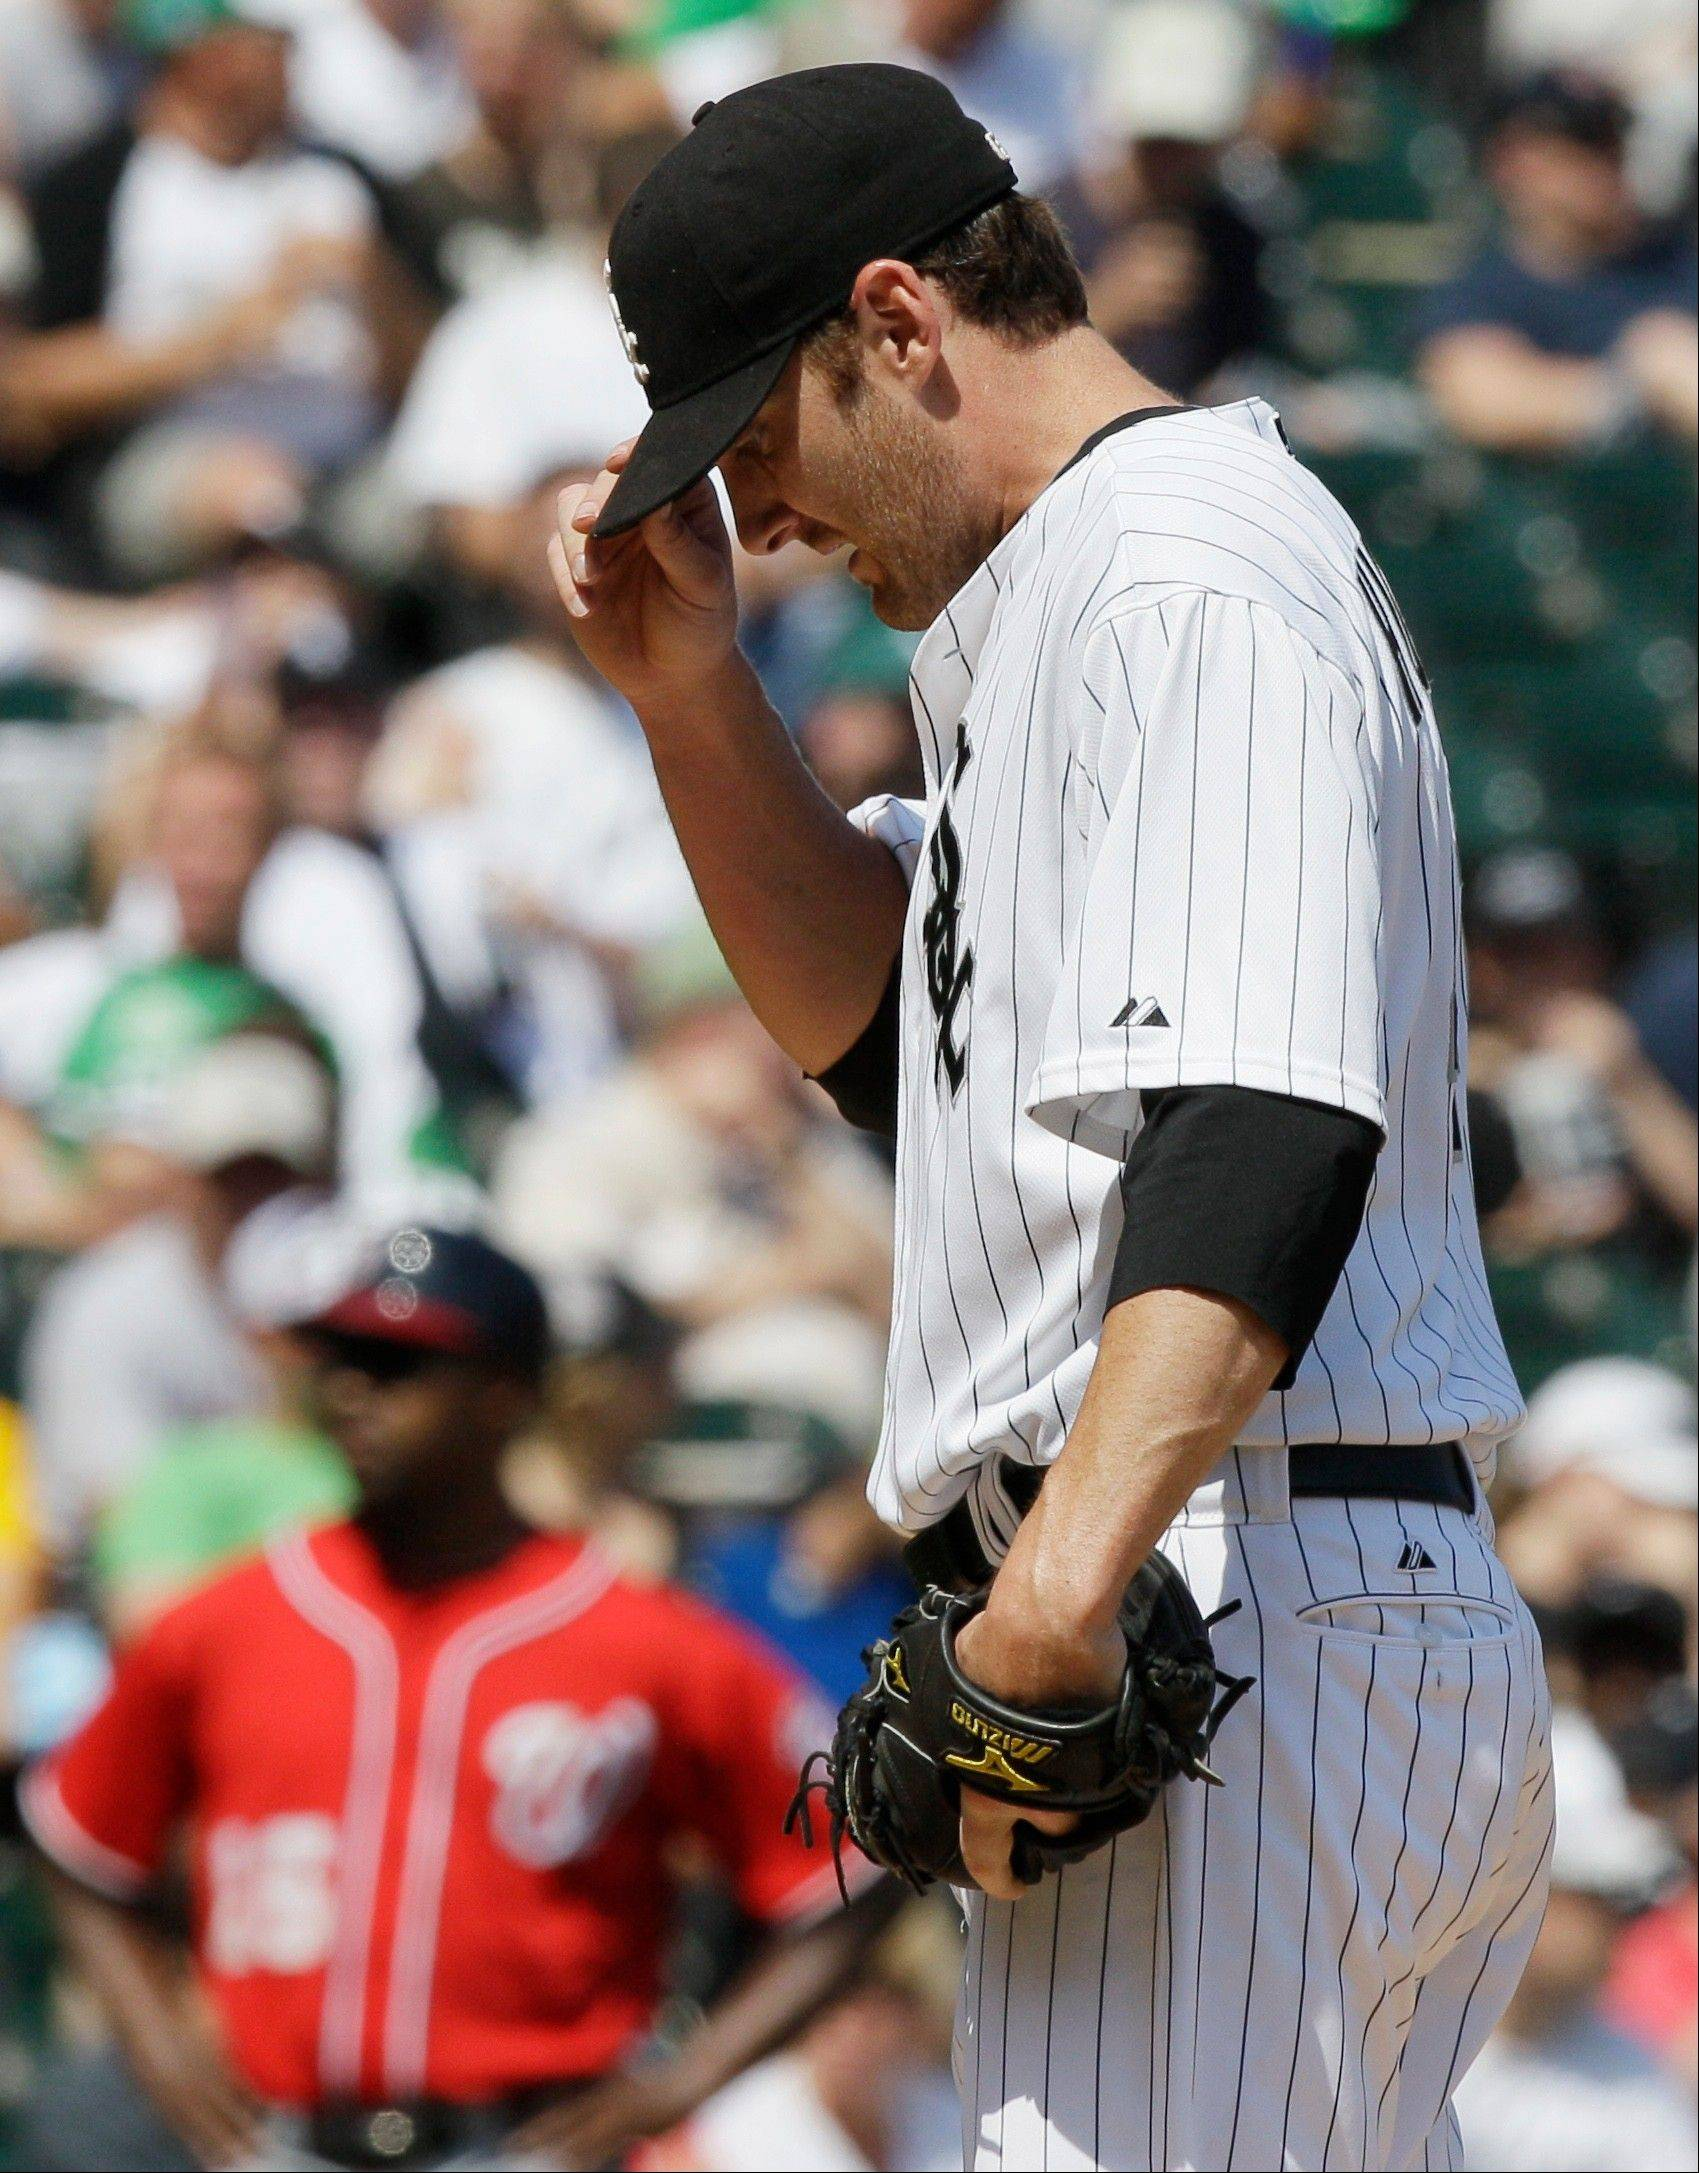 White Sox starter Phil Humber reacts during the seventh inning when he allowed his only runs on a homer by the Nationals' Danny Espinosa.